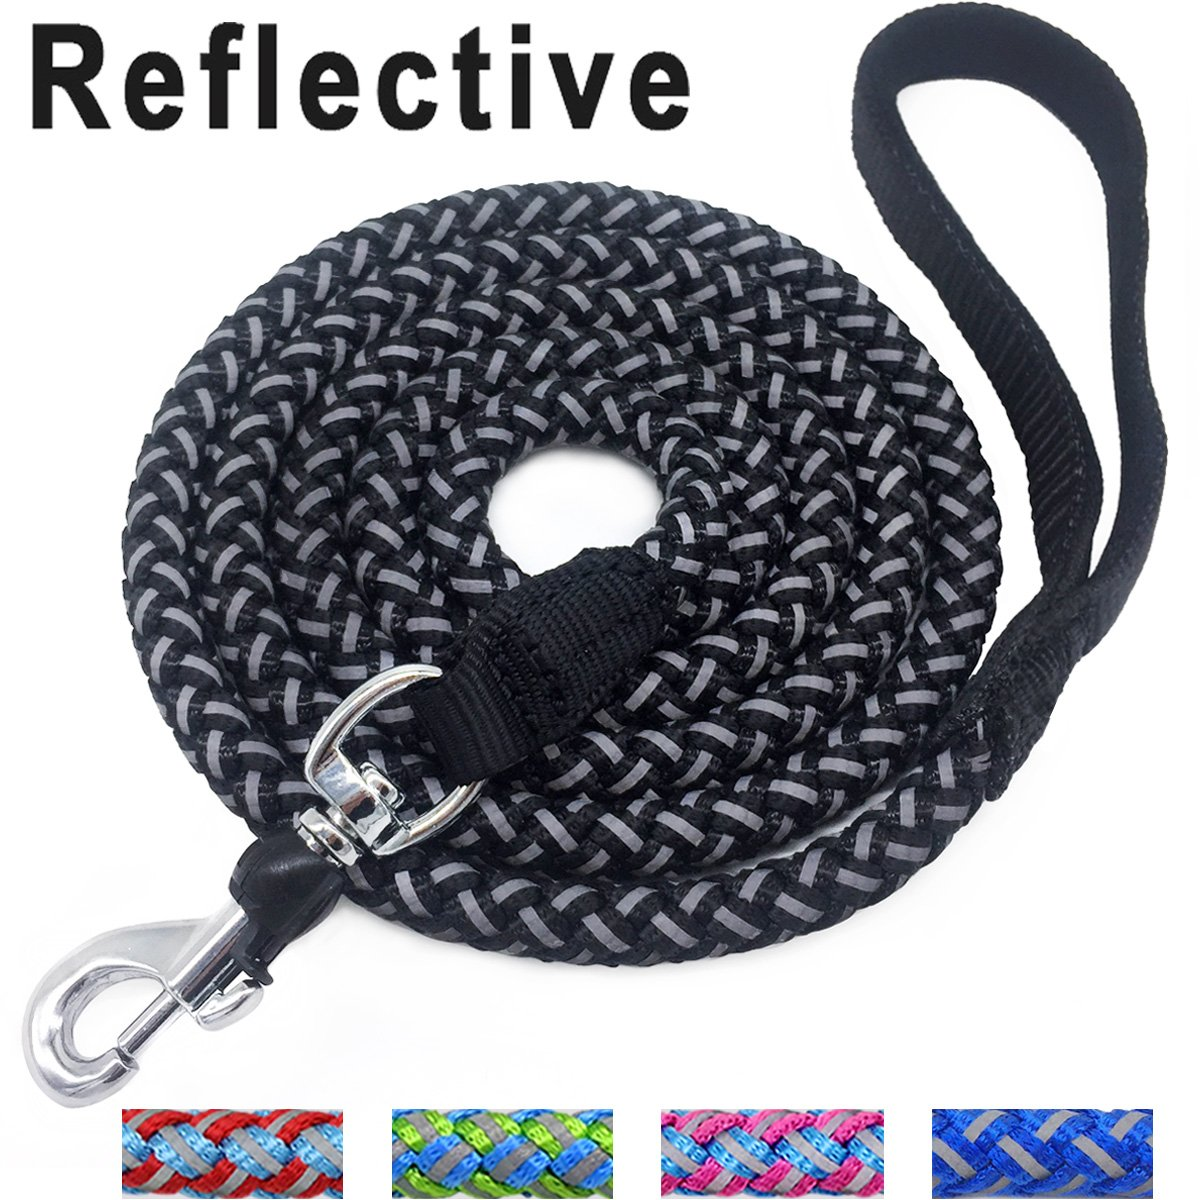 Mycicy 6 Foot Rope Reflective Dog Leash - Nylon Braided Heavy Duty Strong Dog Training Leash for Large and Medium Dogs Walking Leads (6ft, Black)